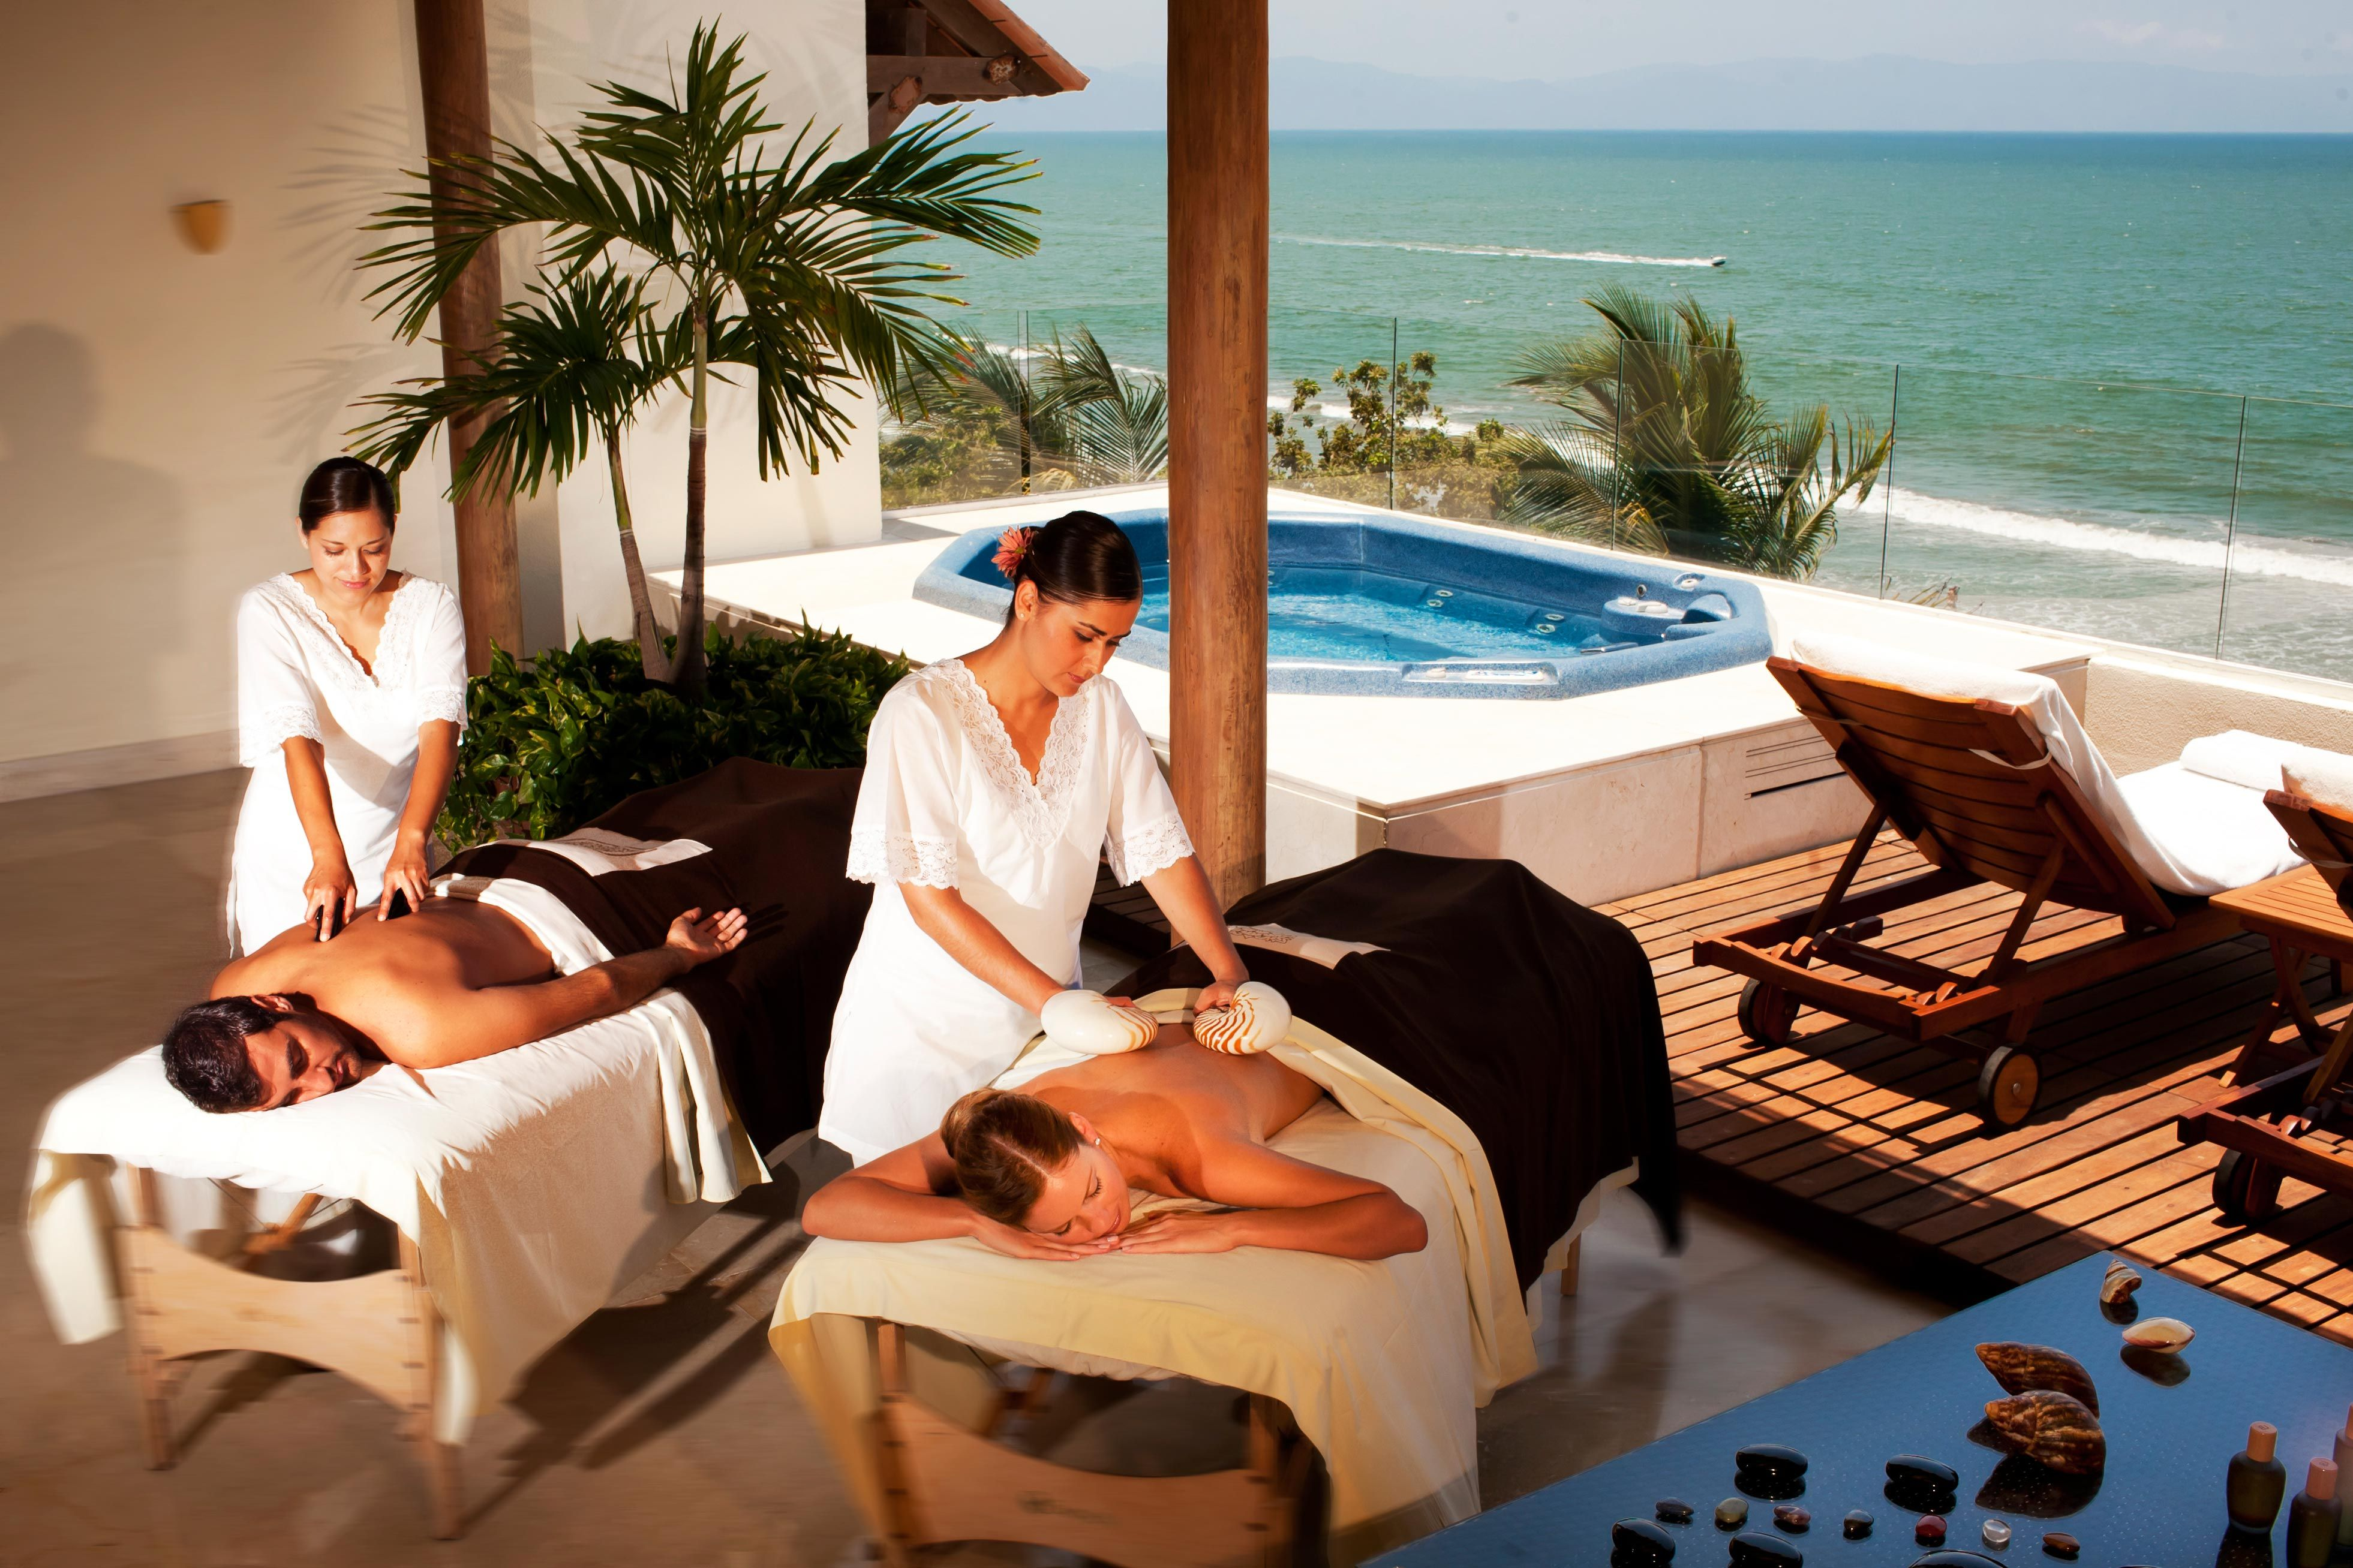 riviera nayarit in puerto vallarta mexico ultimate wedding destination enjoy a couples retreat - The Destination A Luxury Resort